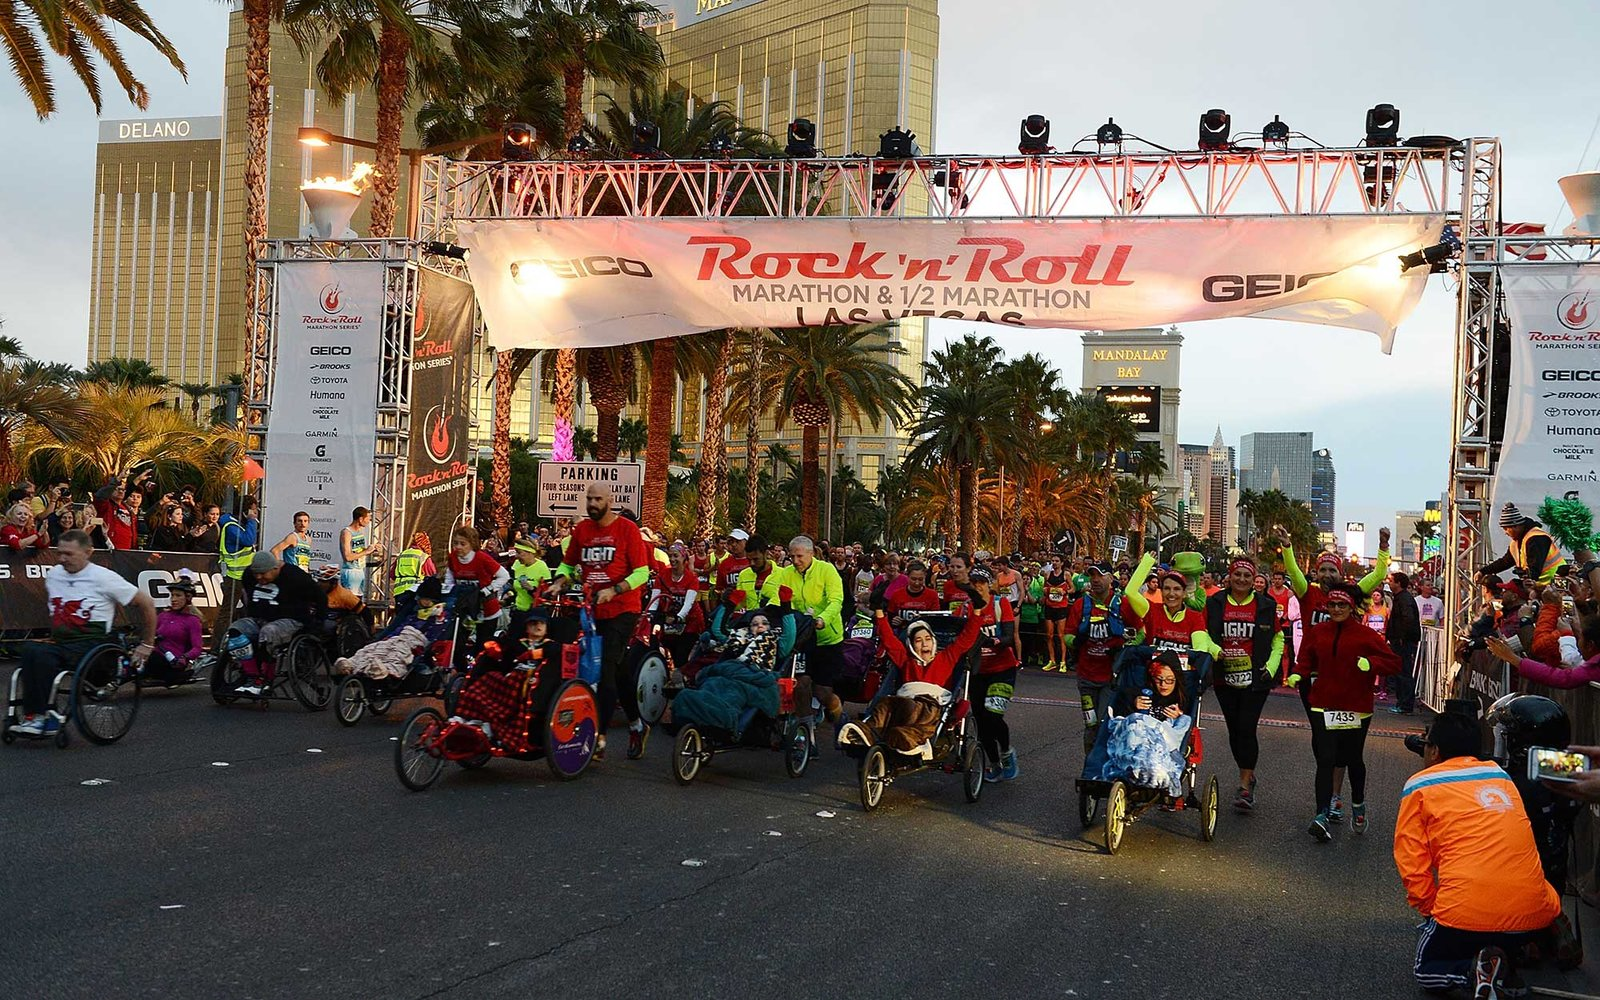 LAS VEGAS, NV - NOVEMBER 15:  A general view during the GEICO Rock 'n' Roll Las Vegas marathon on November 15, 2015 in Las Vegas, Nevada.  (Photo by Denise Truscello/Getty Images for Rock 'n' Roll Marathon Series)